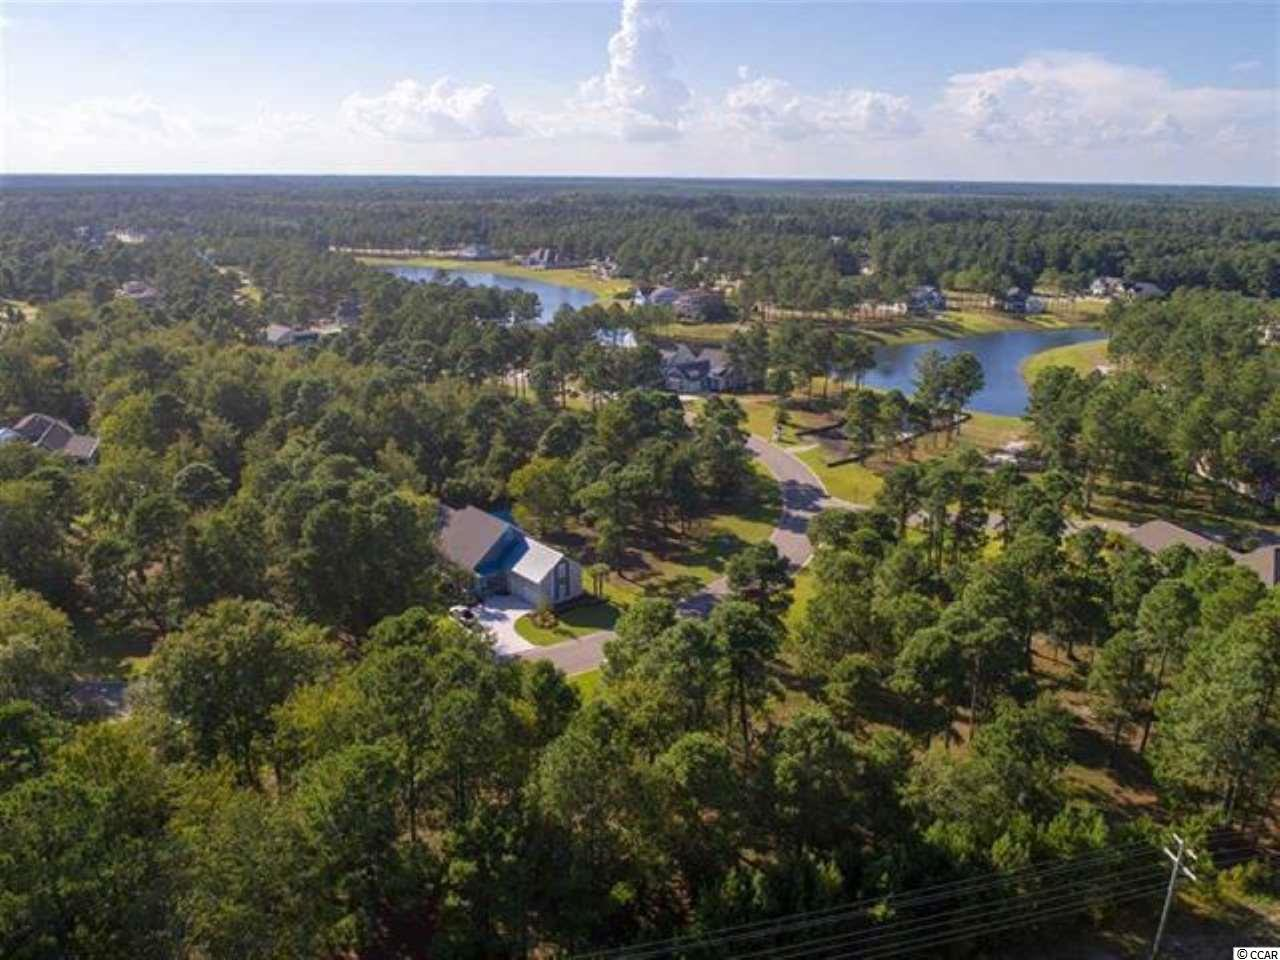 Gorgeous lakefront lot located in the highly sought after gated community of Waterbridge in Carolina Forest ! Lot 212 features 60ft of lake front with beautiful water views and is an easy walk to the amenities center. Come build your dream home w/ no time frame to build. On top of this fantastic lot, Waterbridge's awesome amenities include a huge pool area, tennis, fitness center, volleyball & basketball courts, boat storage, a boat launch & pier, fire pit, swim-up refreshments bar. Conveniently located close to the award winning school system and just a short drive to the Tanger Outlets, MB Airport, hospital, shopping, dining, entertainment, golf, area attractions, & the beautiful Atlantic Ocean w/ 60 miles of white sandy beaches ! Don't miss ~ come live the dream!